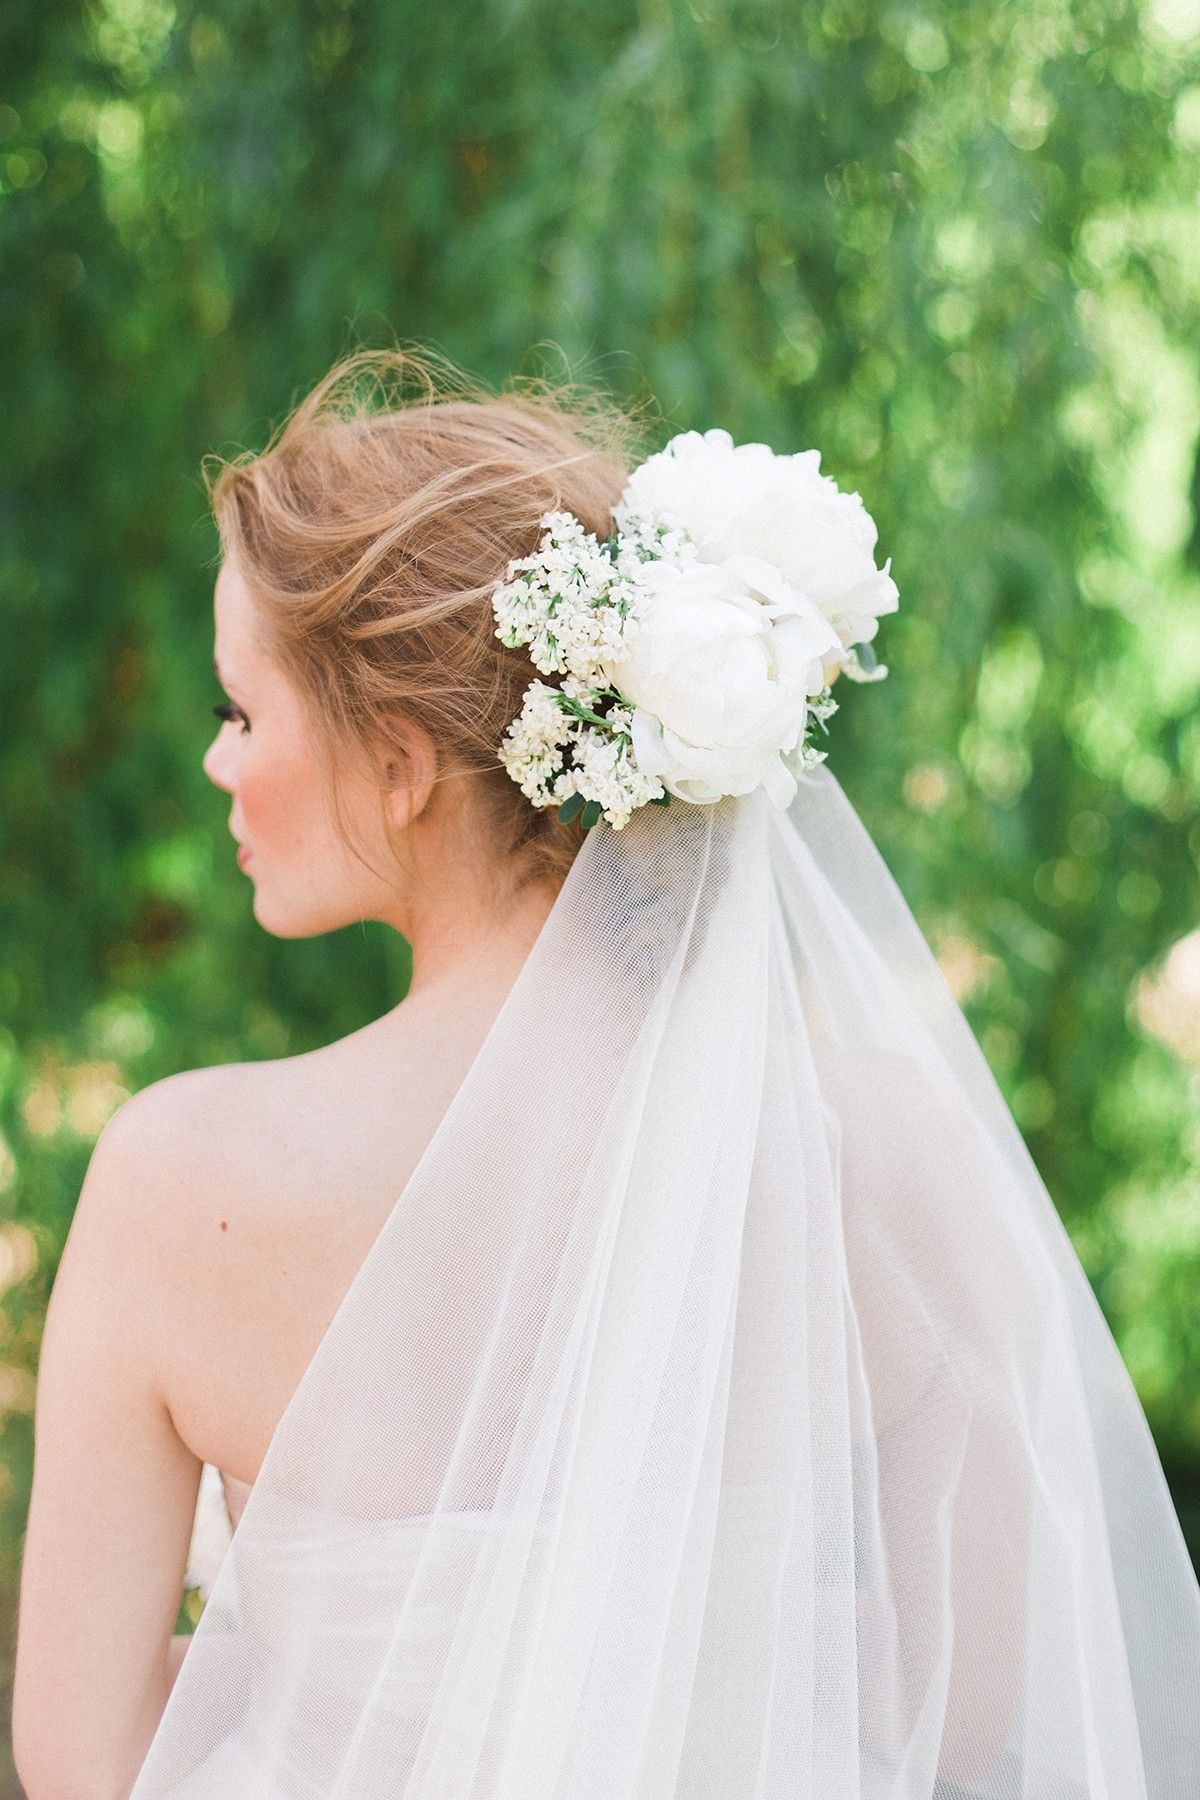 Popular Wedding Hairstyles With Veil And Flower With Flower Veil Wedding Inspirational Wedding Hair With Flowers & Veil (View 2 of 15)